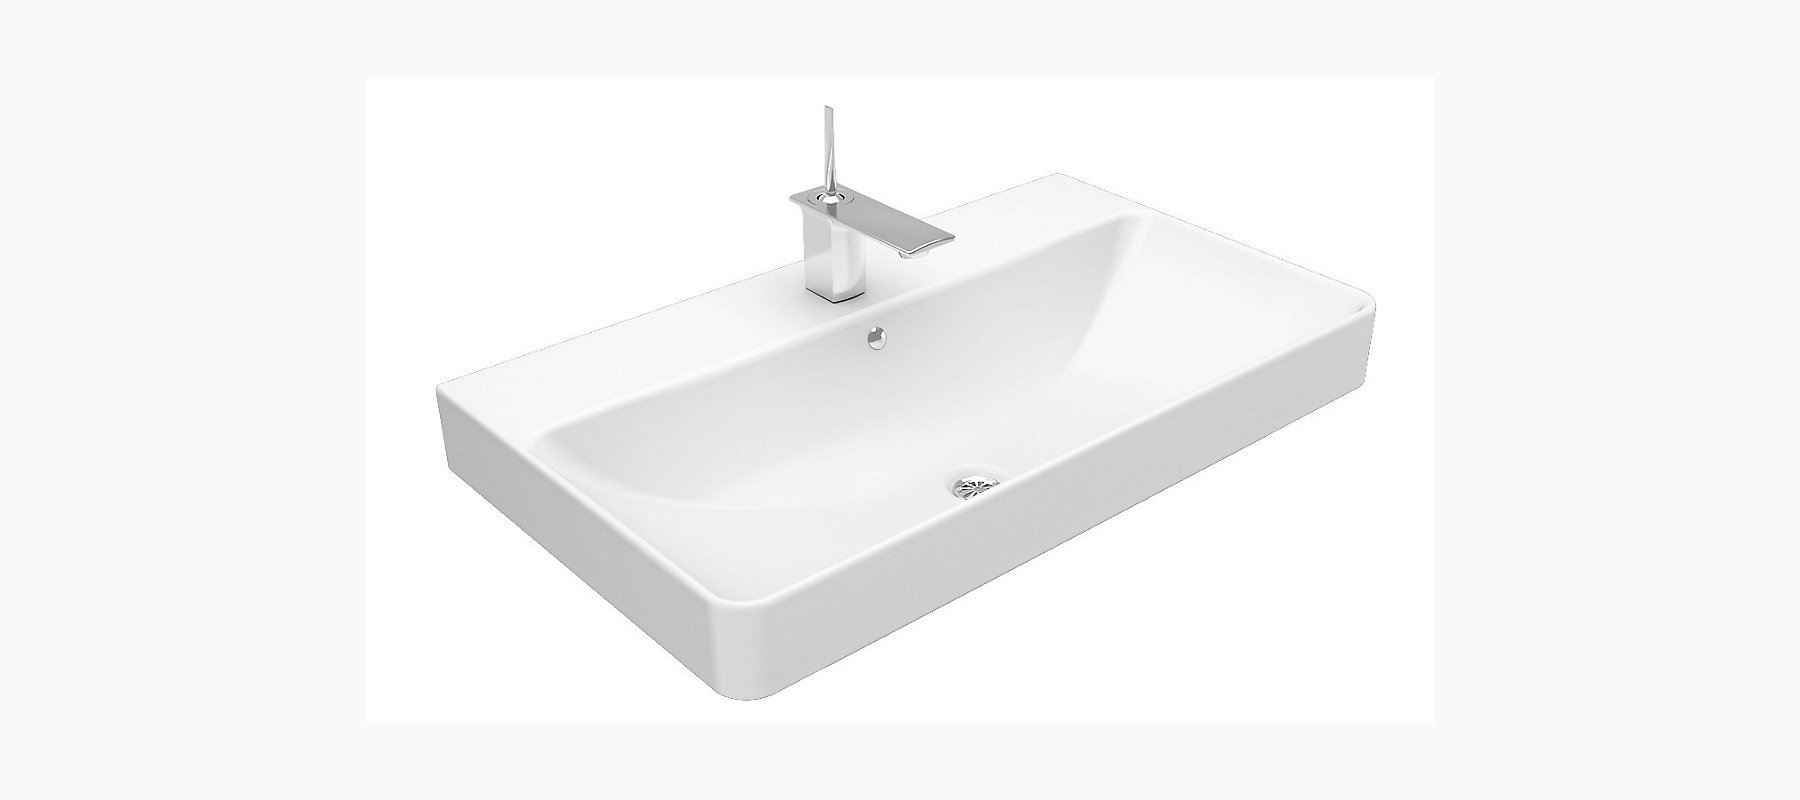 Forefront Vanity Top With Single Faucet Hole K 2749t 1 Kohler